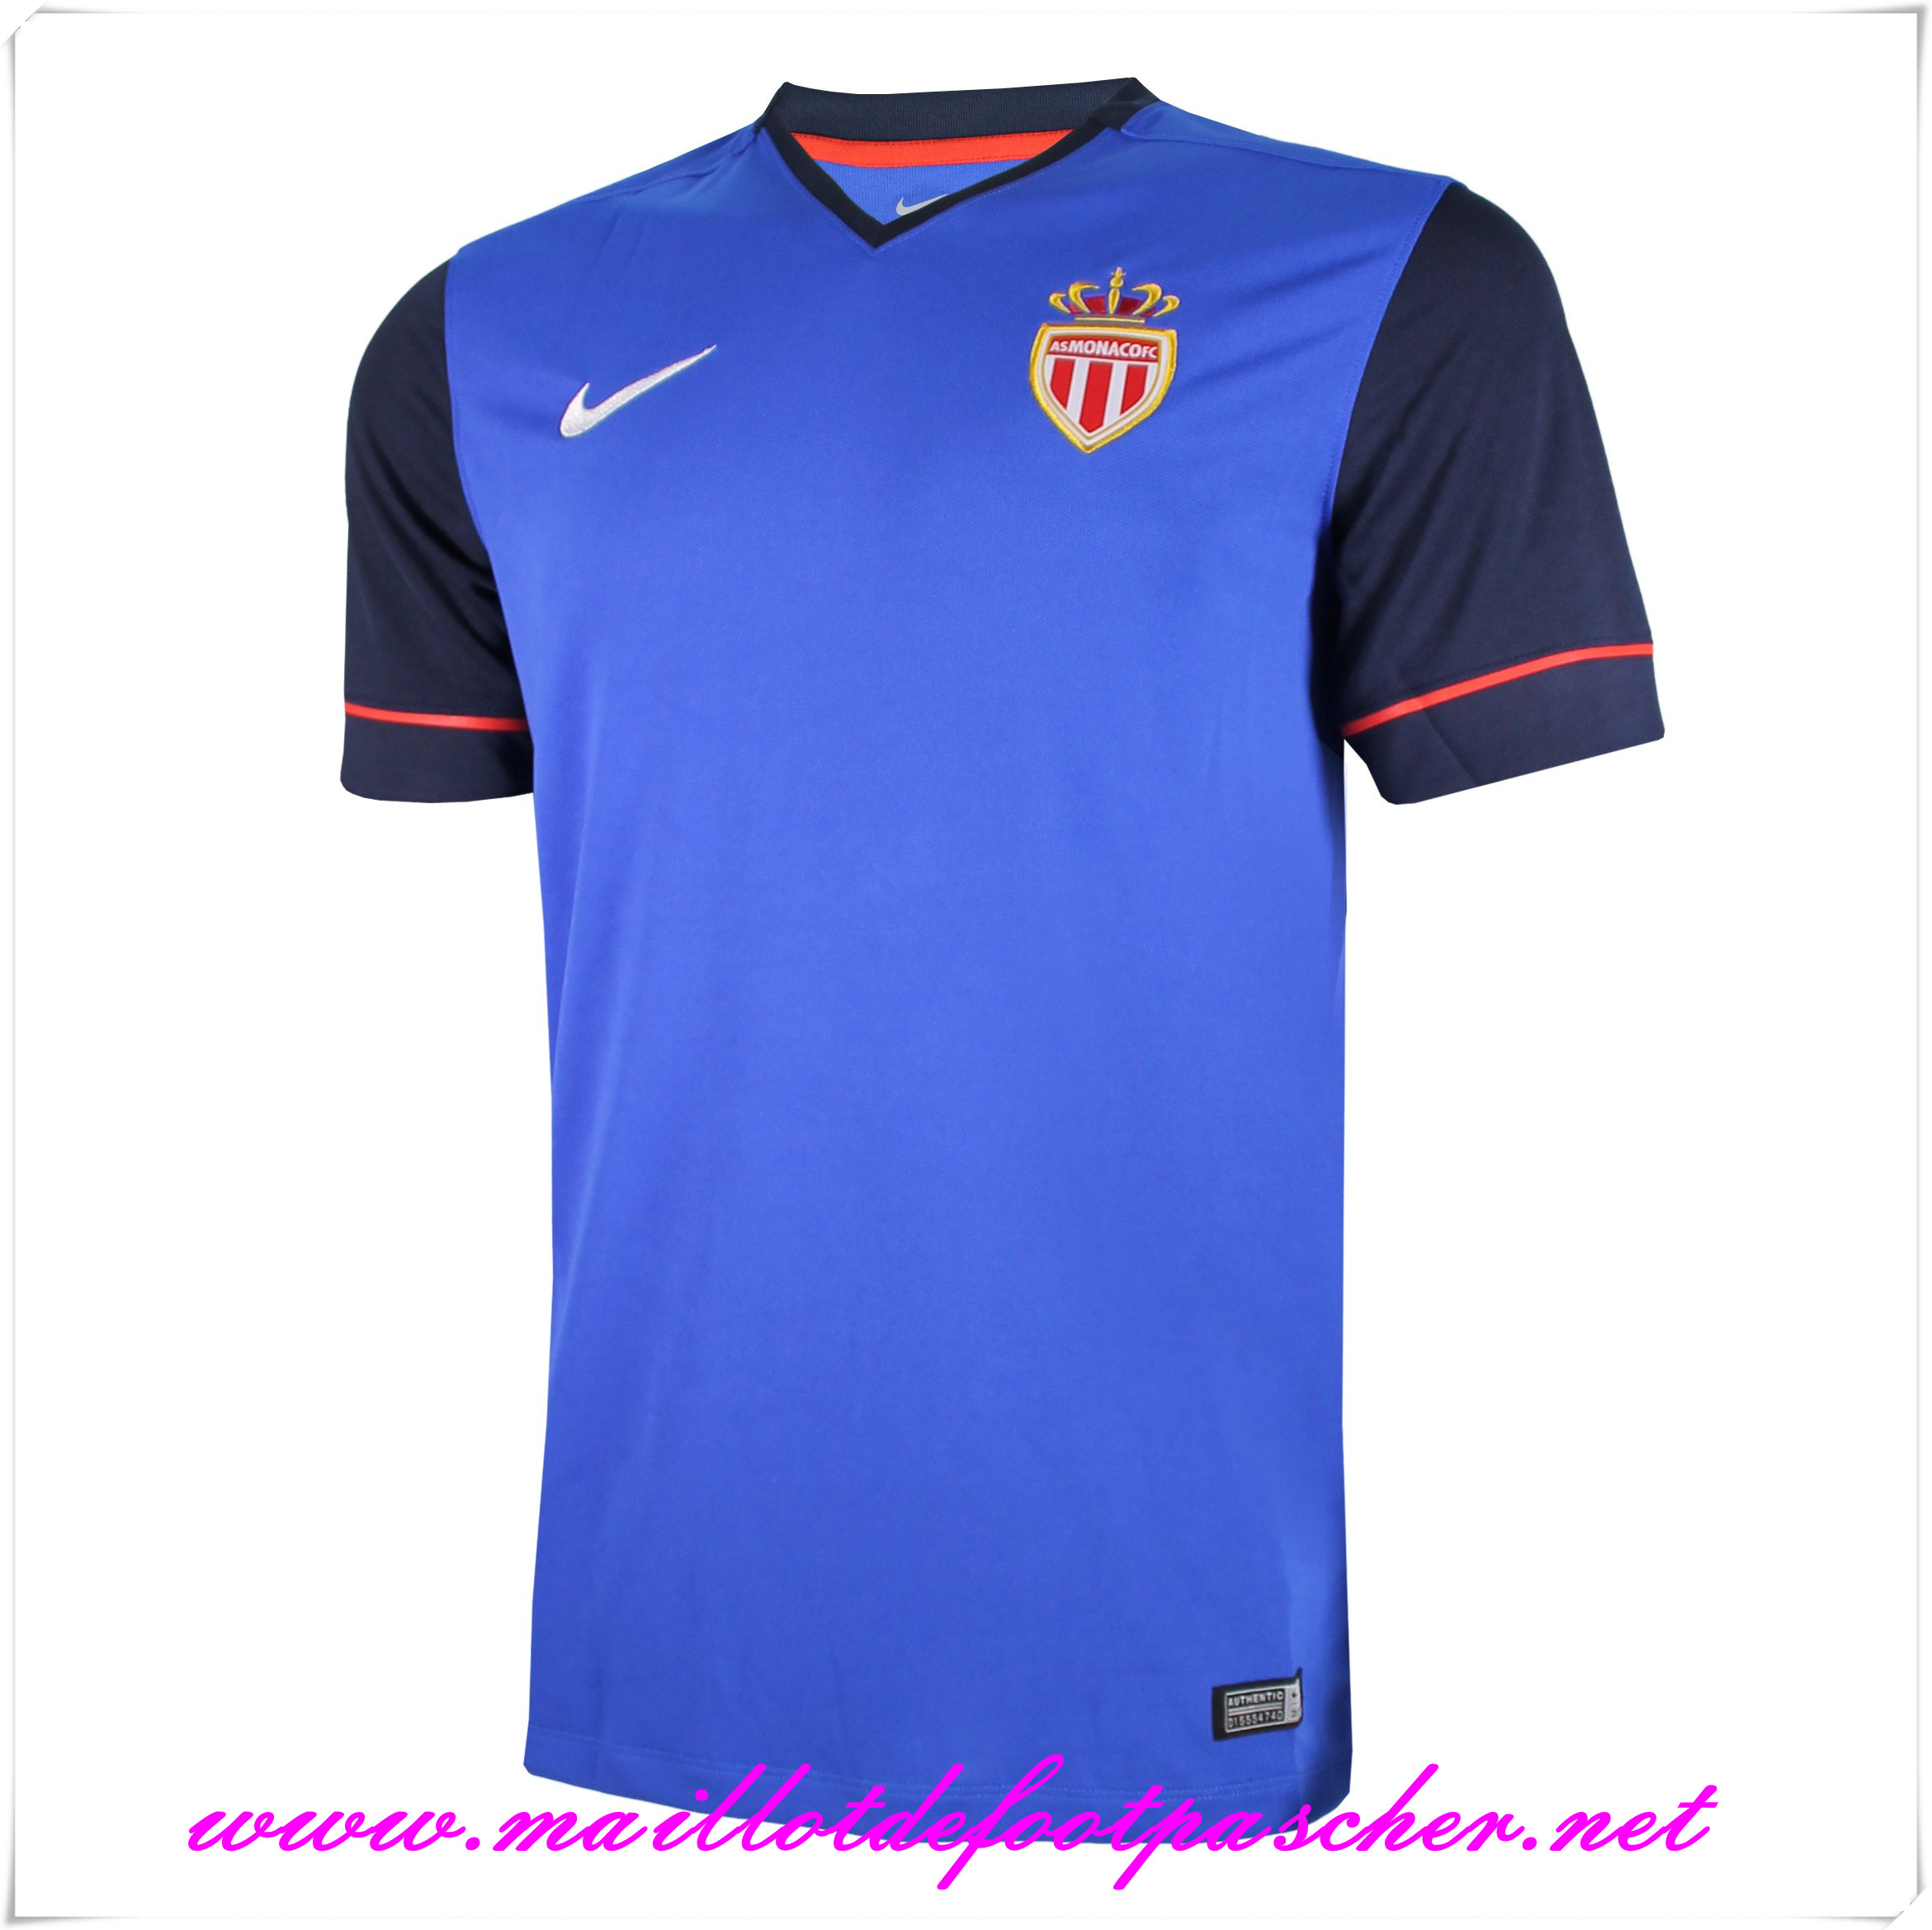 maillots-fr: Ligue 1 Nouveau maillot foot AS Monaco Exterieur 2014 2015